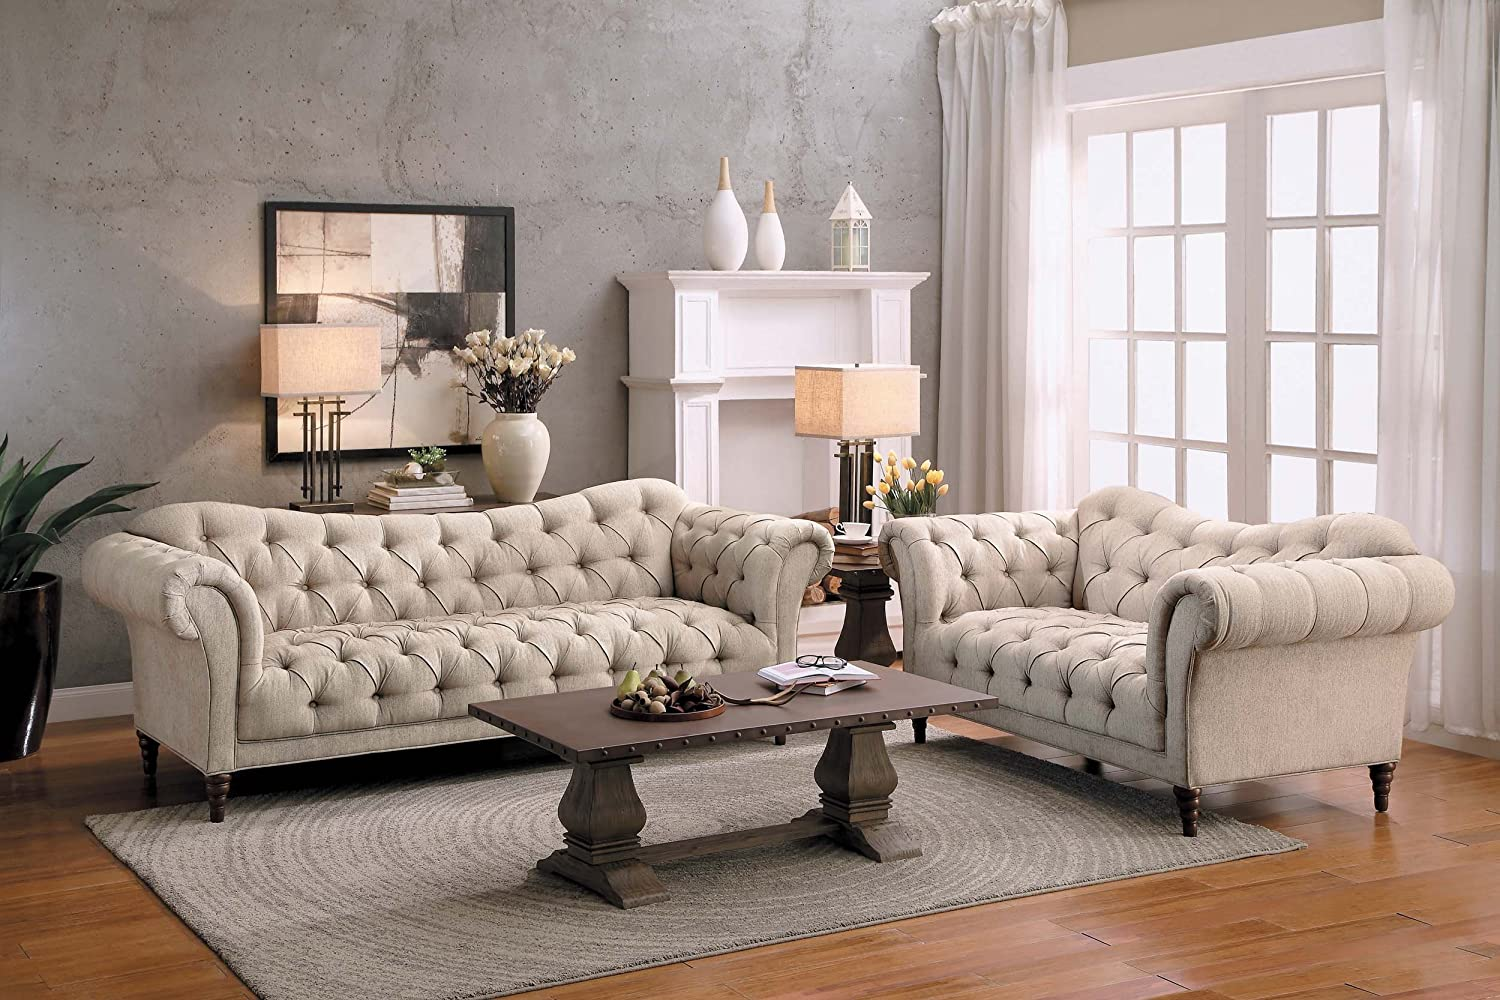 The 5 Best Living Room Sofas And Couches: Buying Guide & Reviews 16